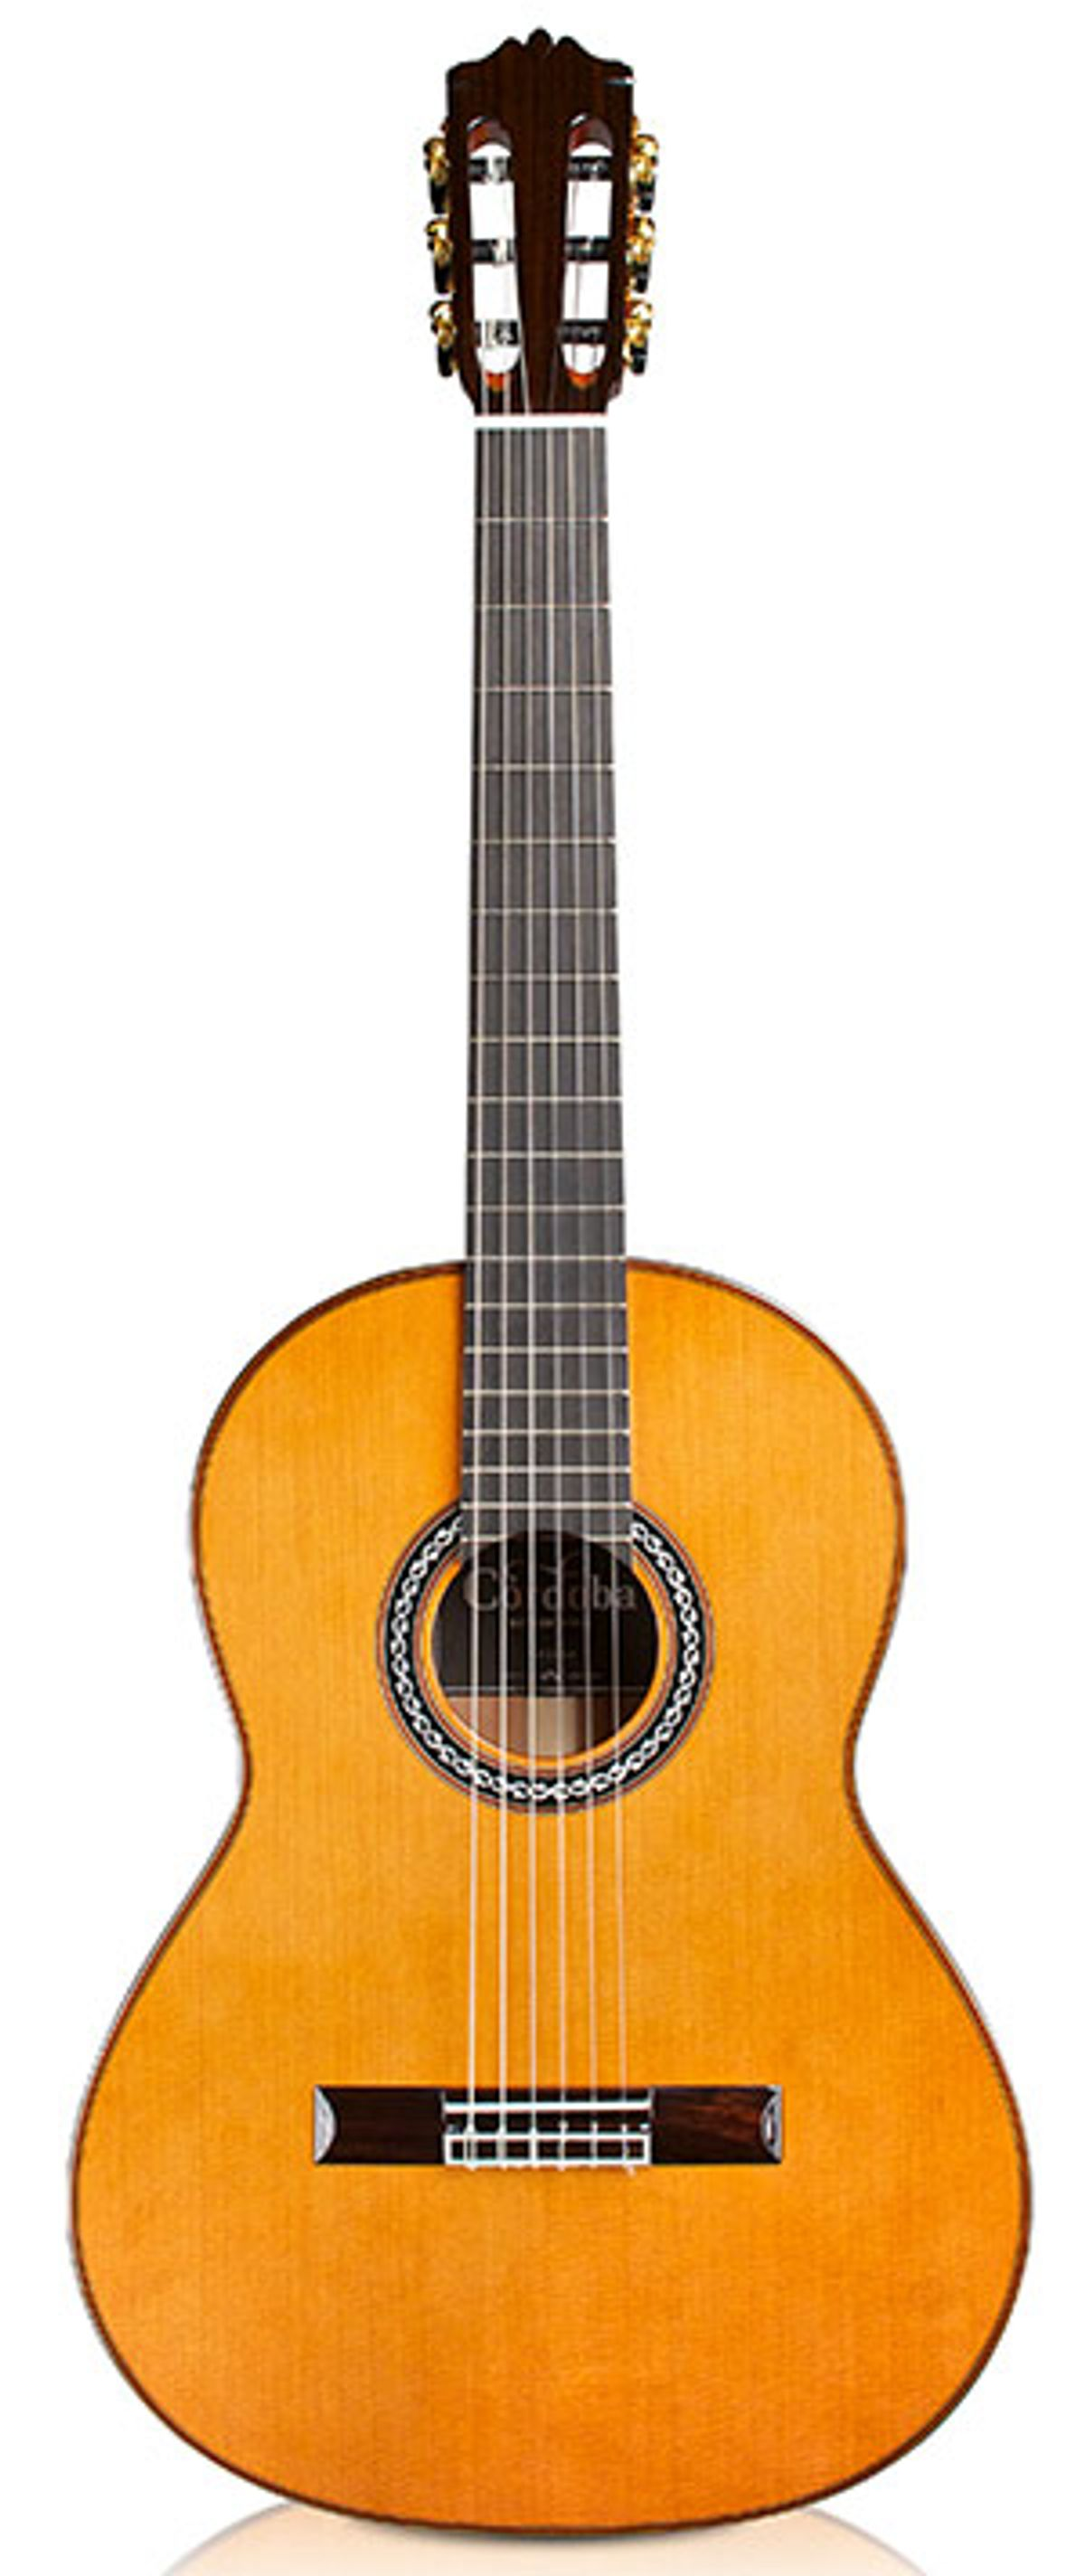 Cordoba Announces Boutique Luthier Series and Acoustic Fidelity System